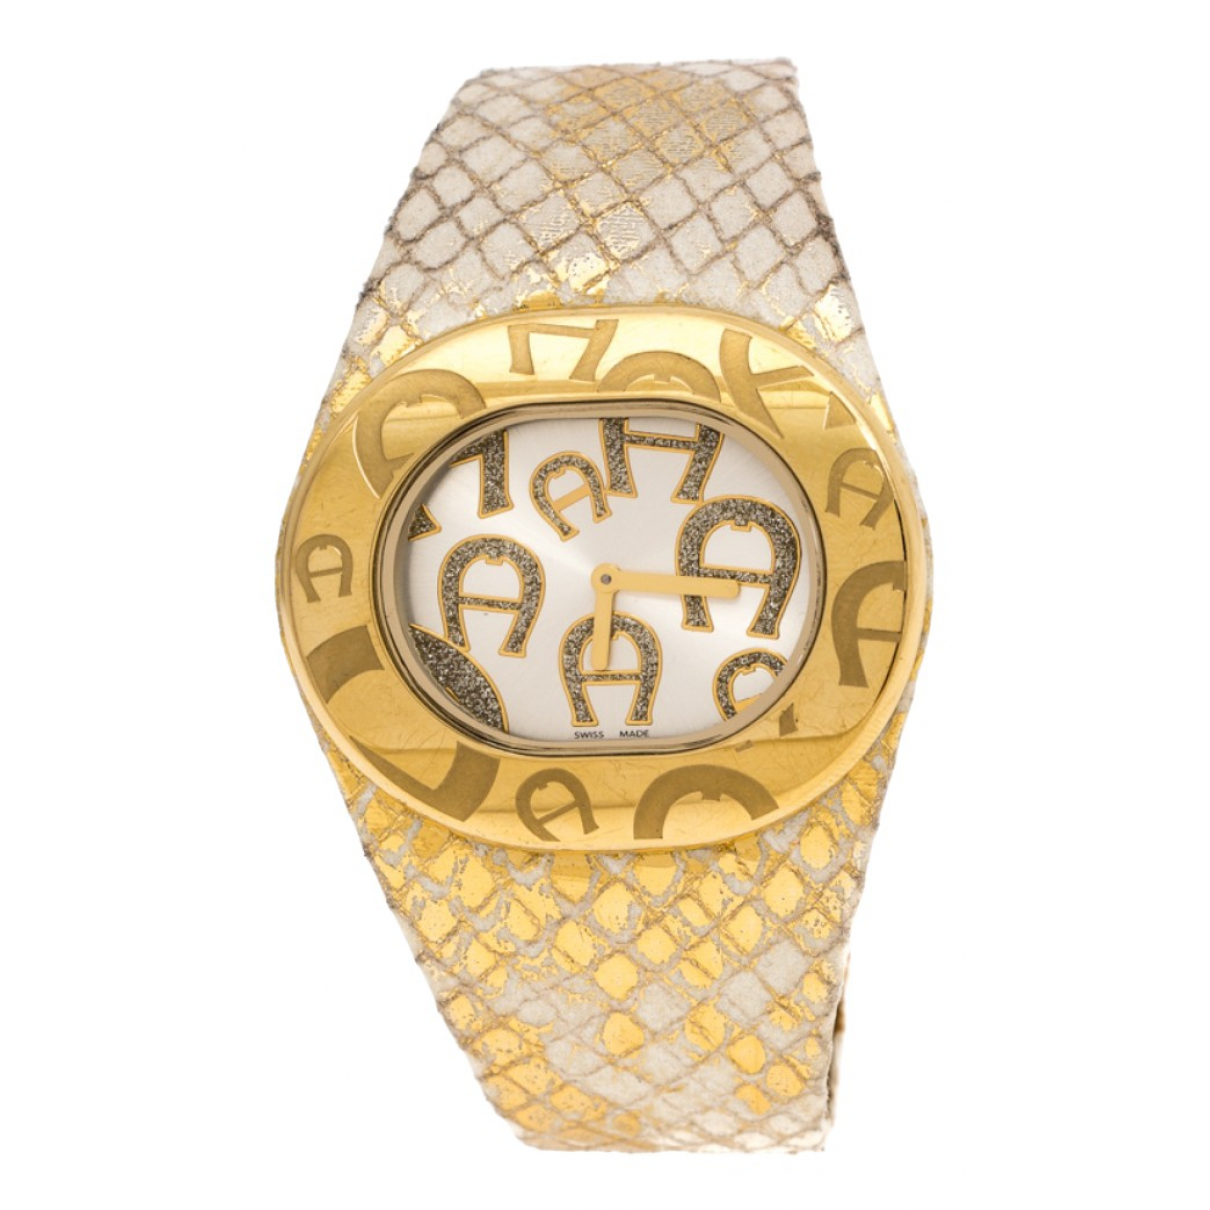 Aigner \N Gold plated watch for Women \N